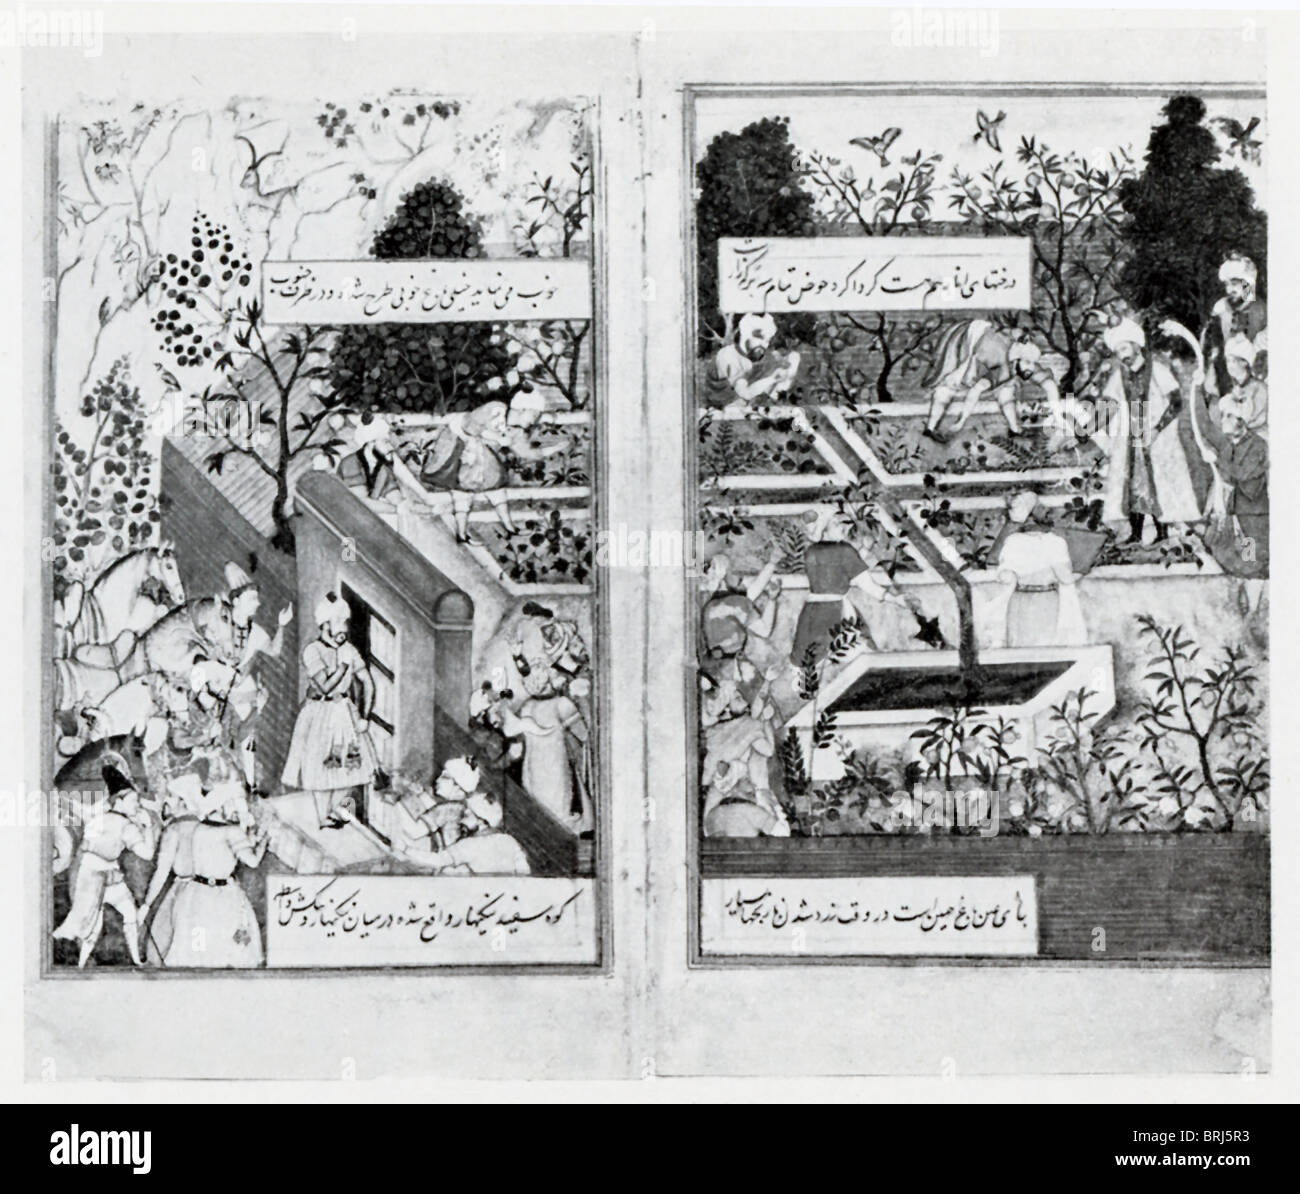 Babur (third figure from right in right panel), founder of the Mughal Empire,  is shown helping to lay out a garden. - Stock Image